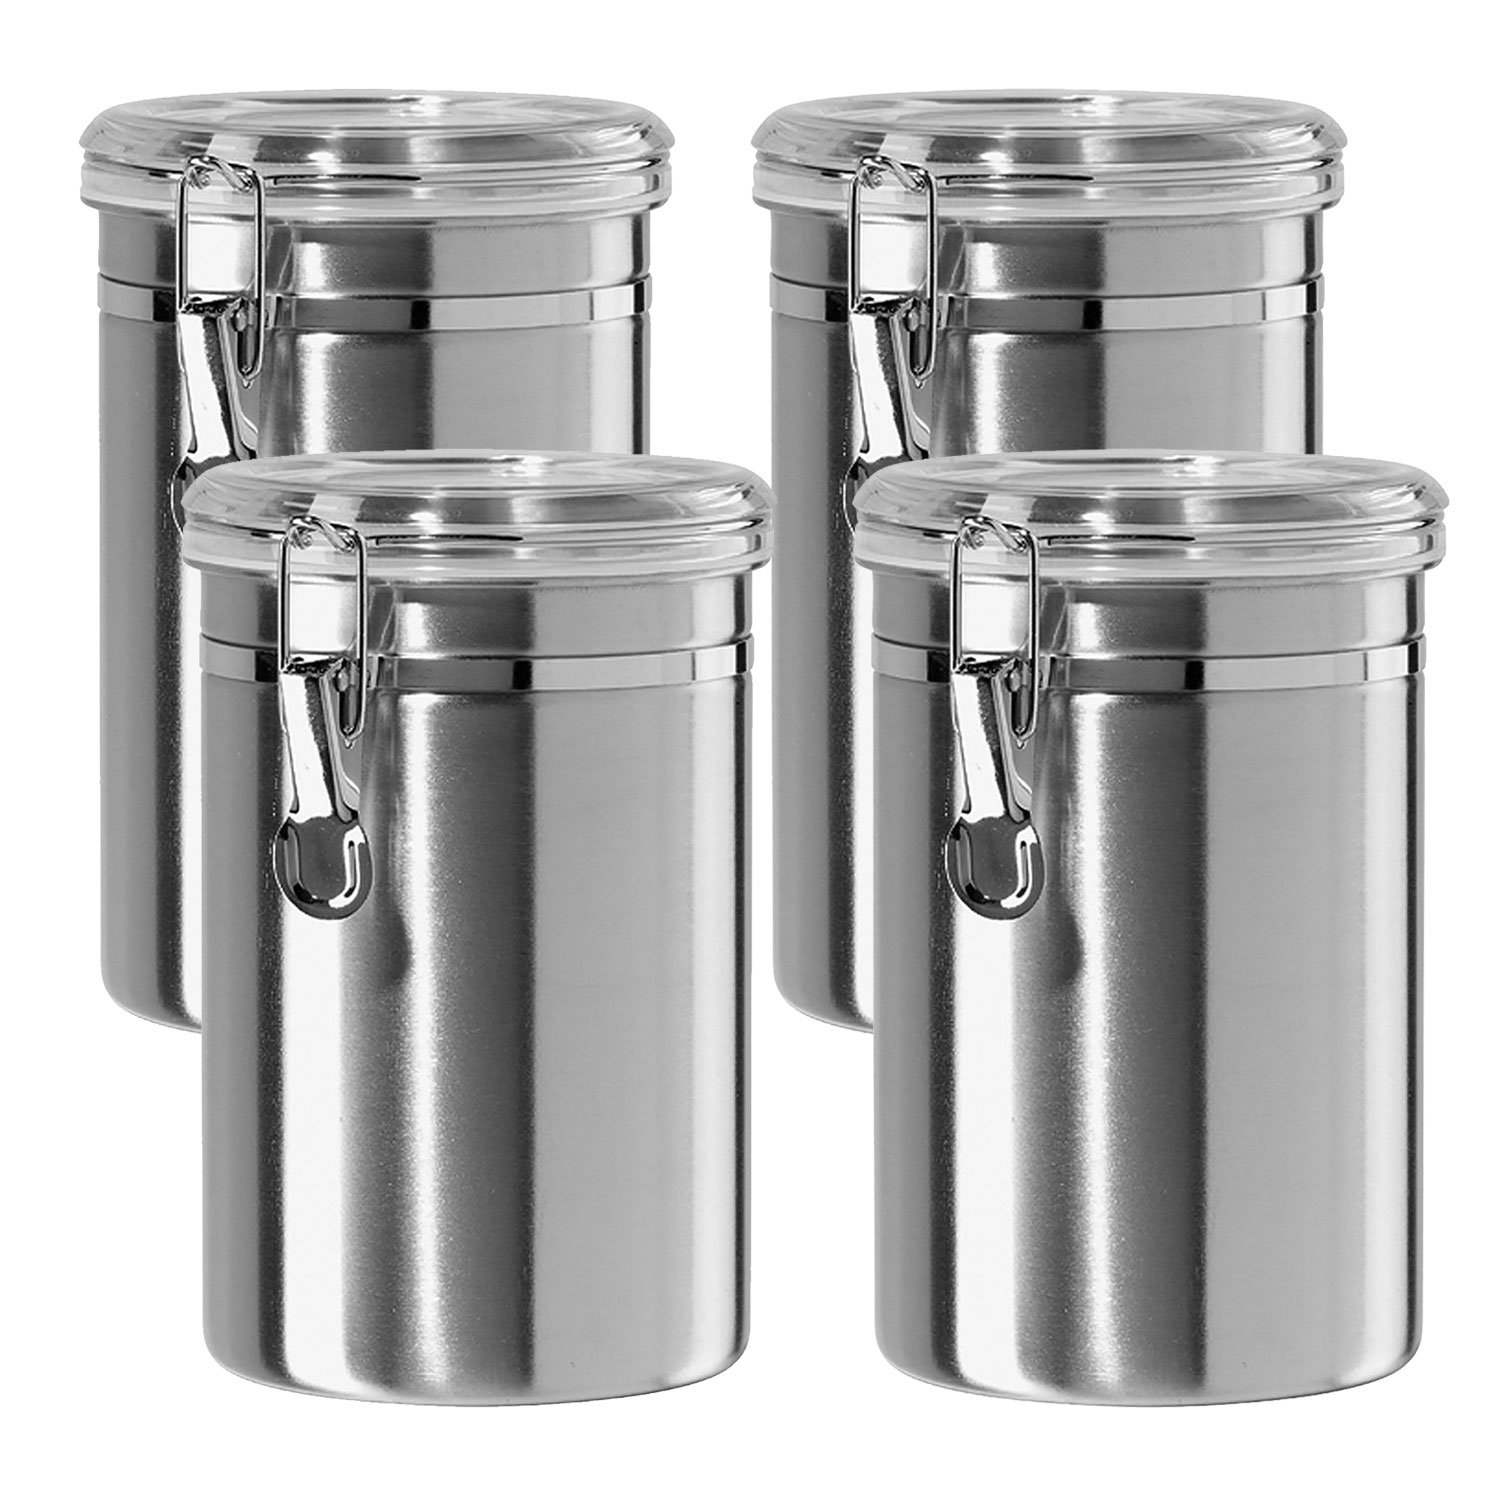 Silver yx 4 Piece Canister Set Stainless Steel Small 6 5 Inch 4